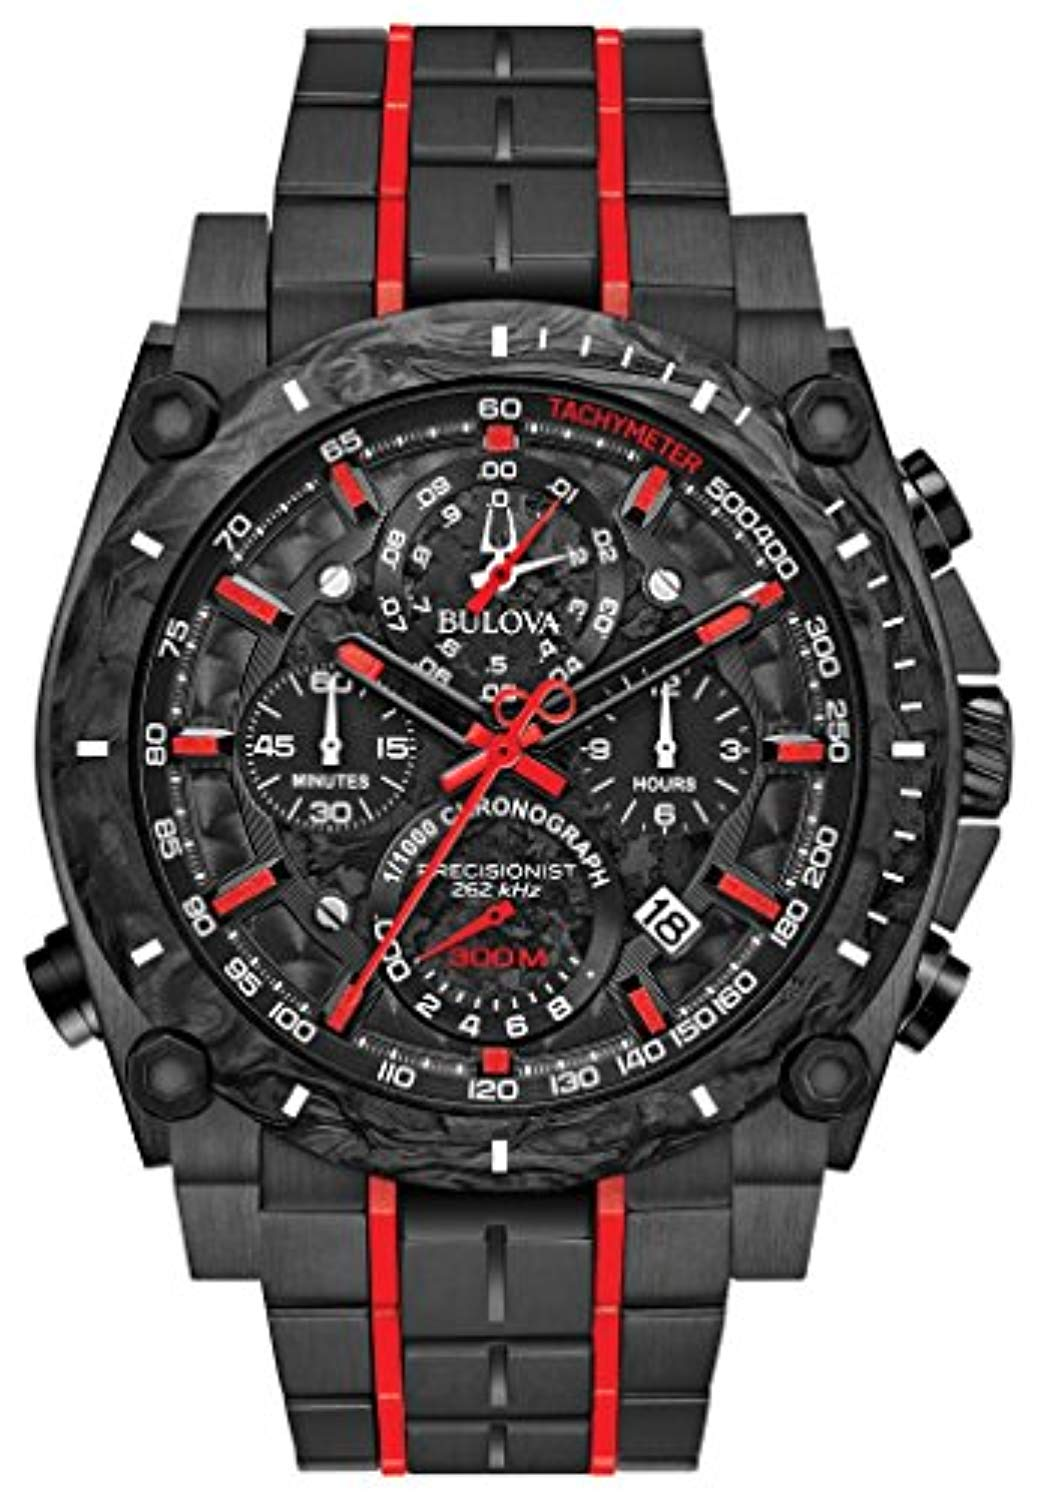 Bulova 98B313 Precisionist Men's Watch Black 46.5mm Black IP Stainless Steel and Forged Carbon case